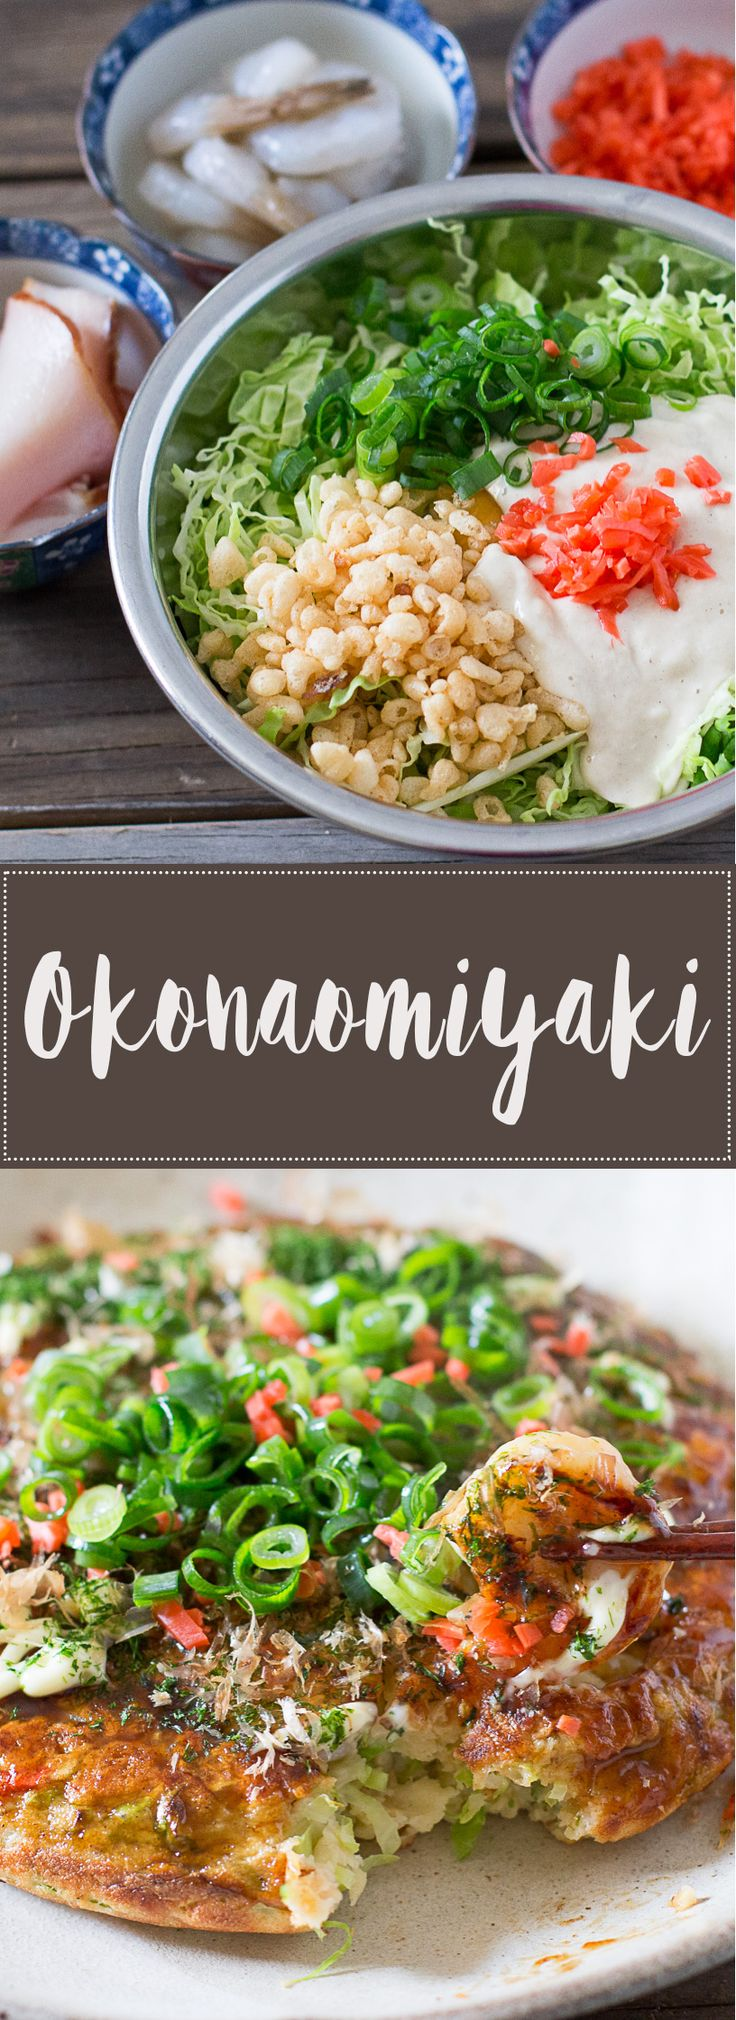 Okonomiyaki is a Japanese savoury pancake that you can easily make at home with your favourite toppings!